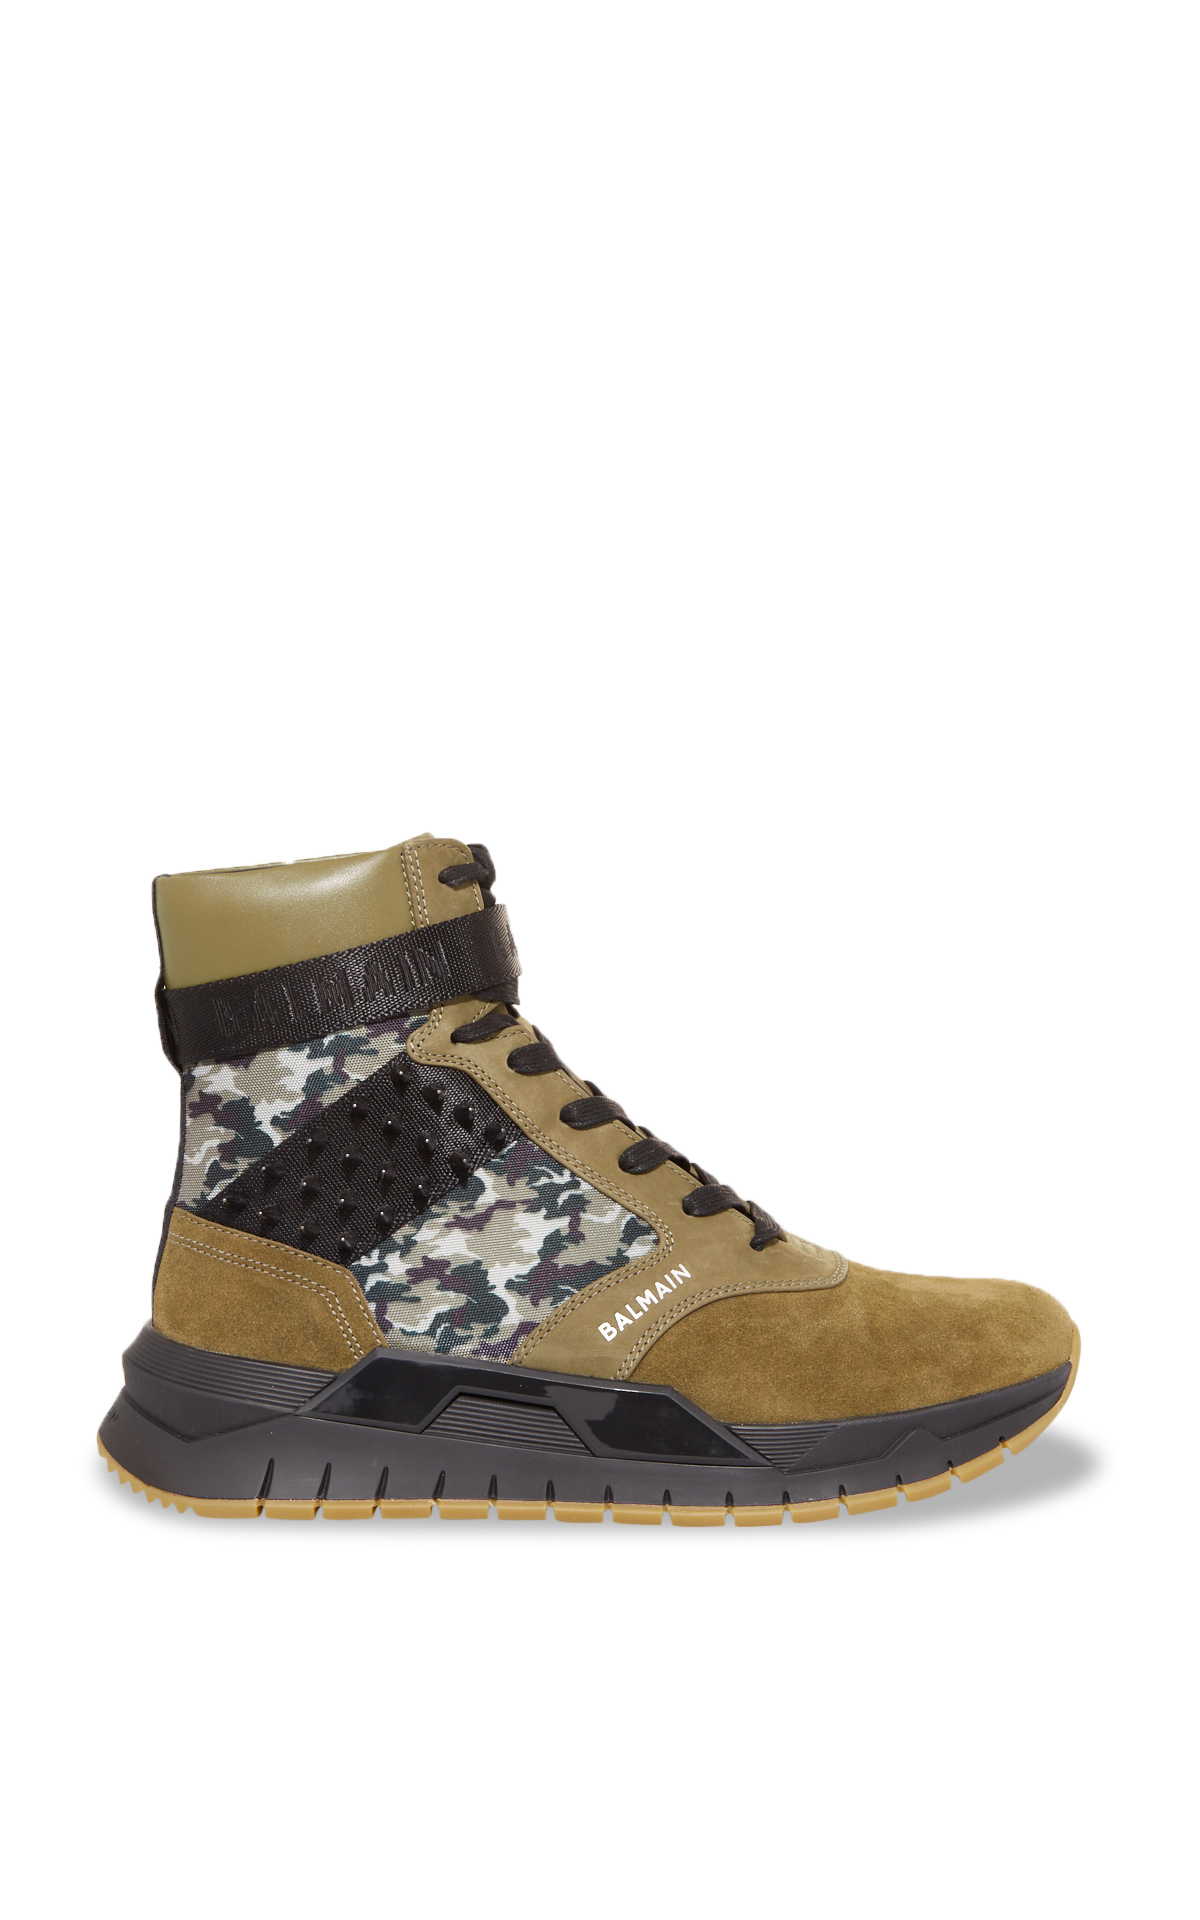 La Vallée Village Balmain High-top sneakers